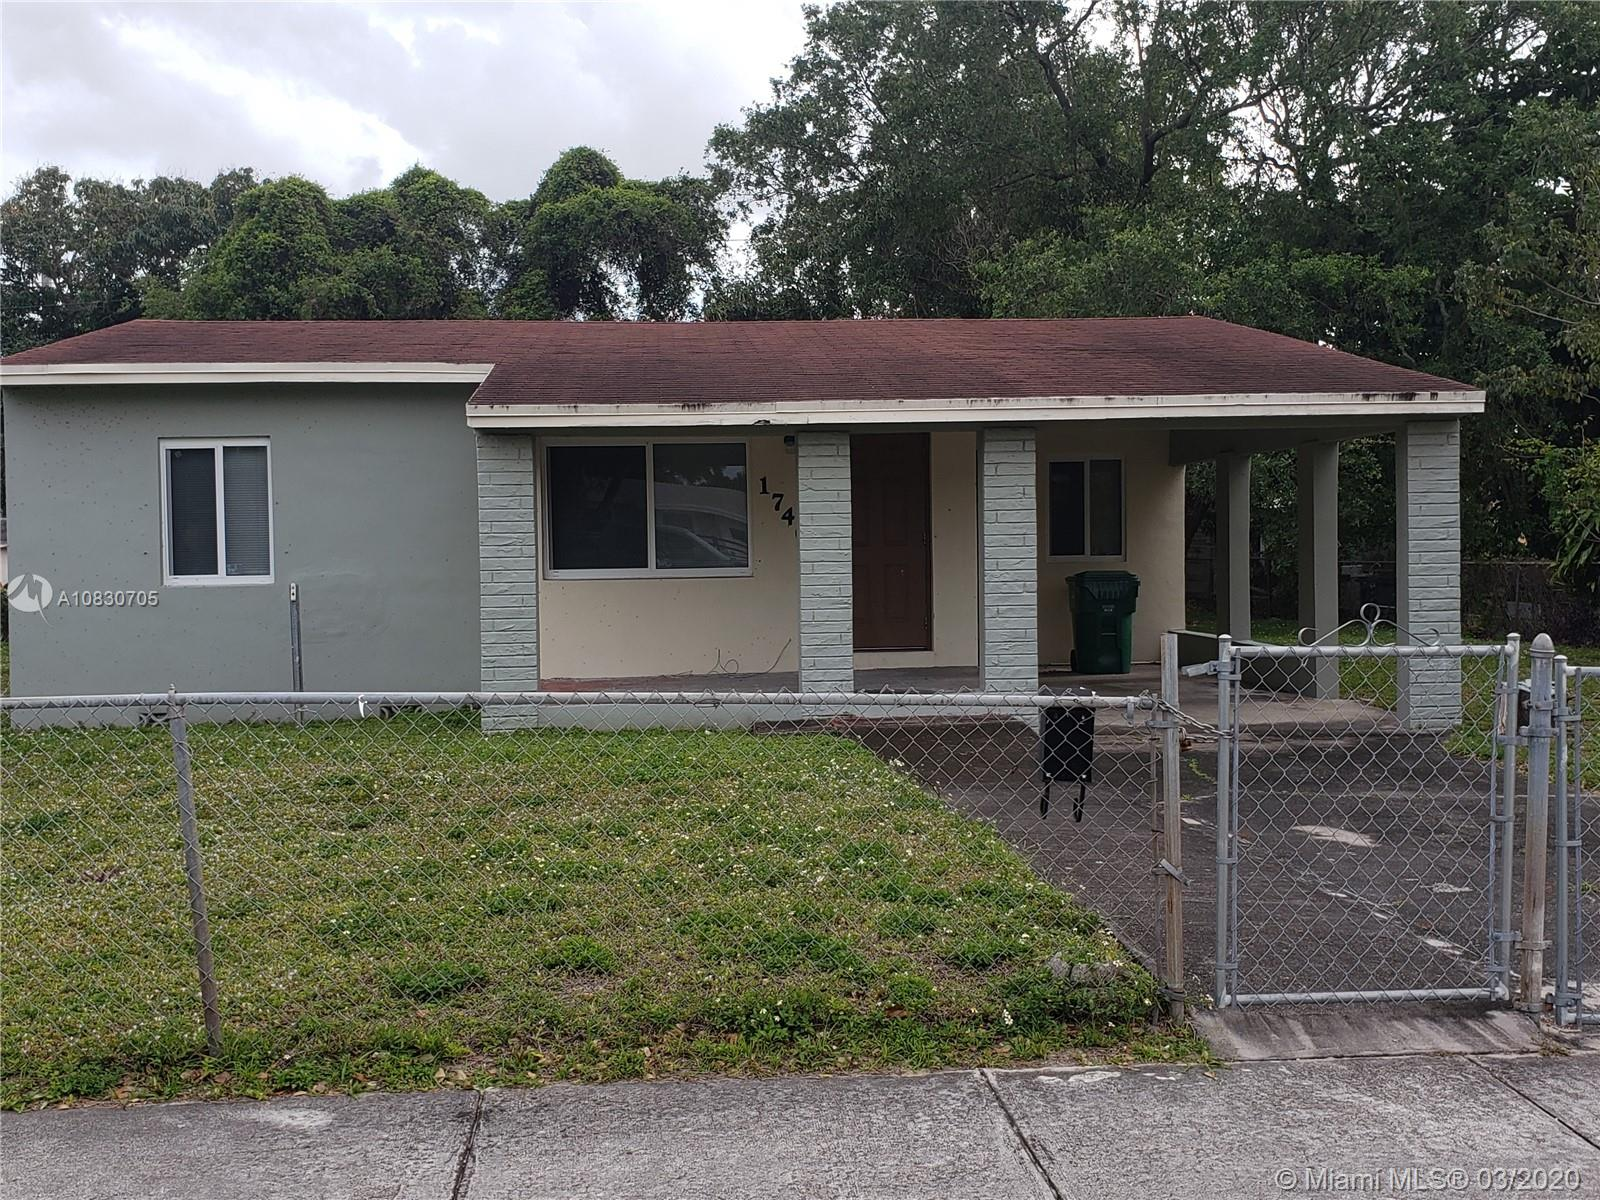 1740 NW 88th St Property Photo - Miami, FL real estate listing